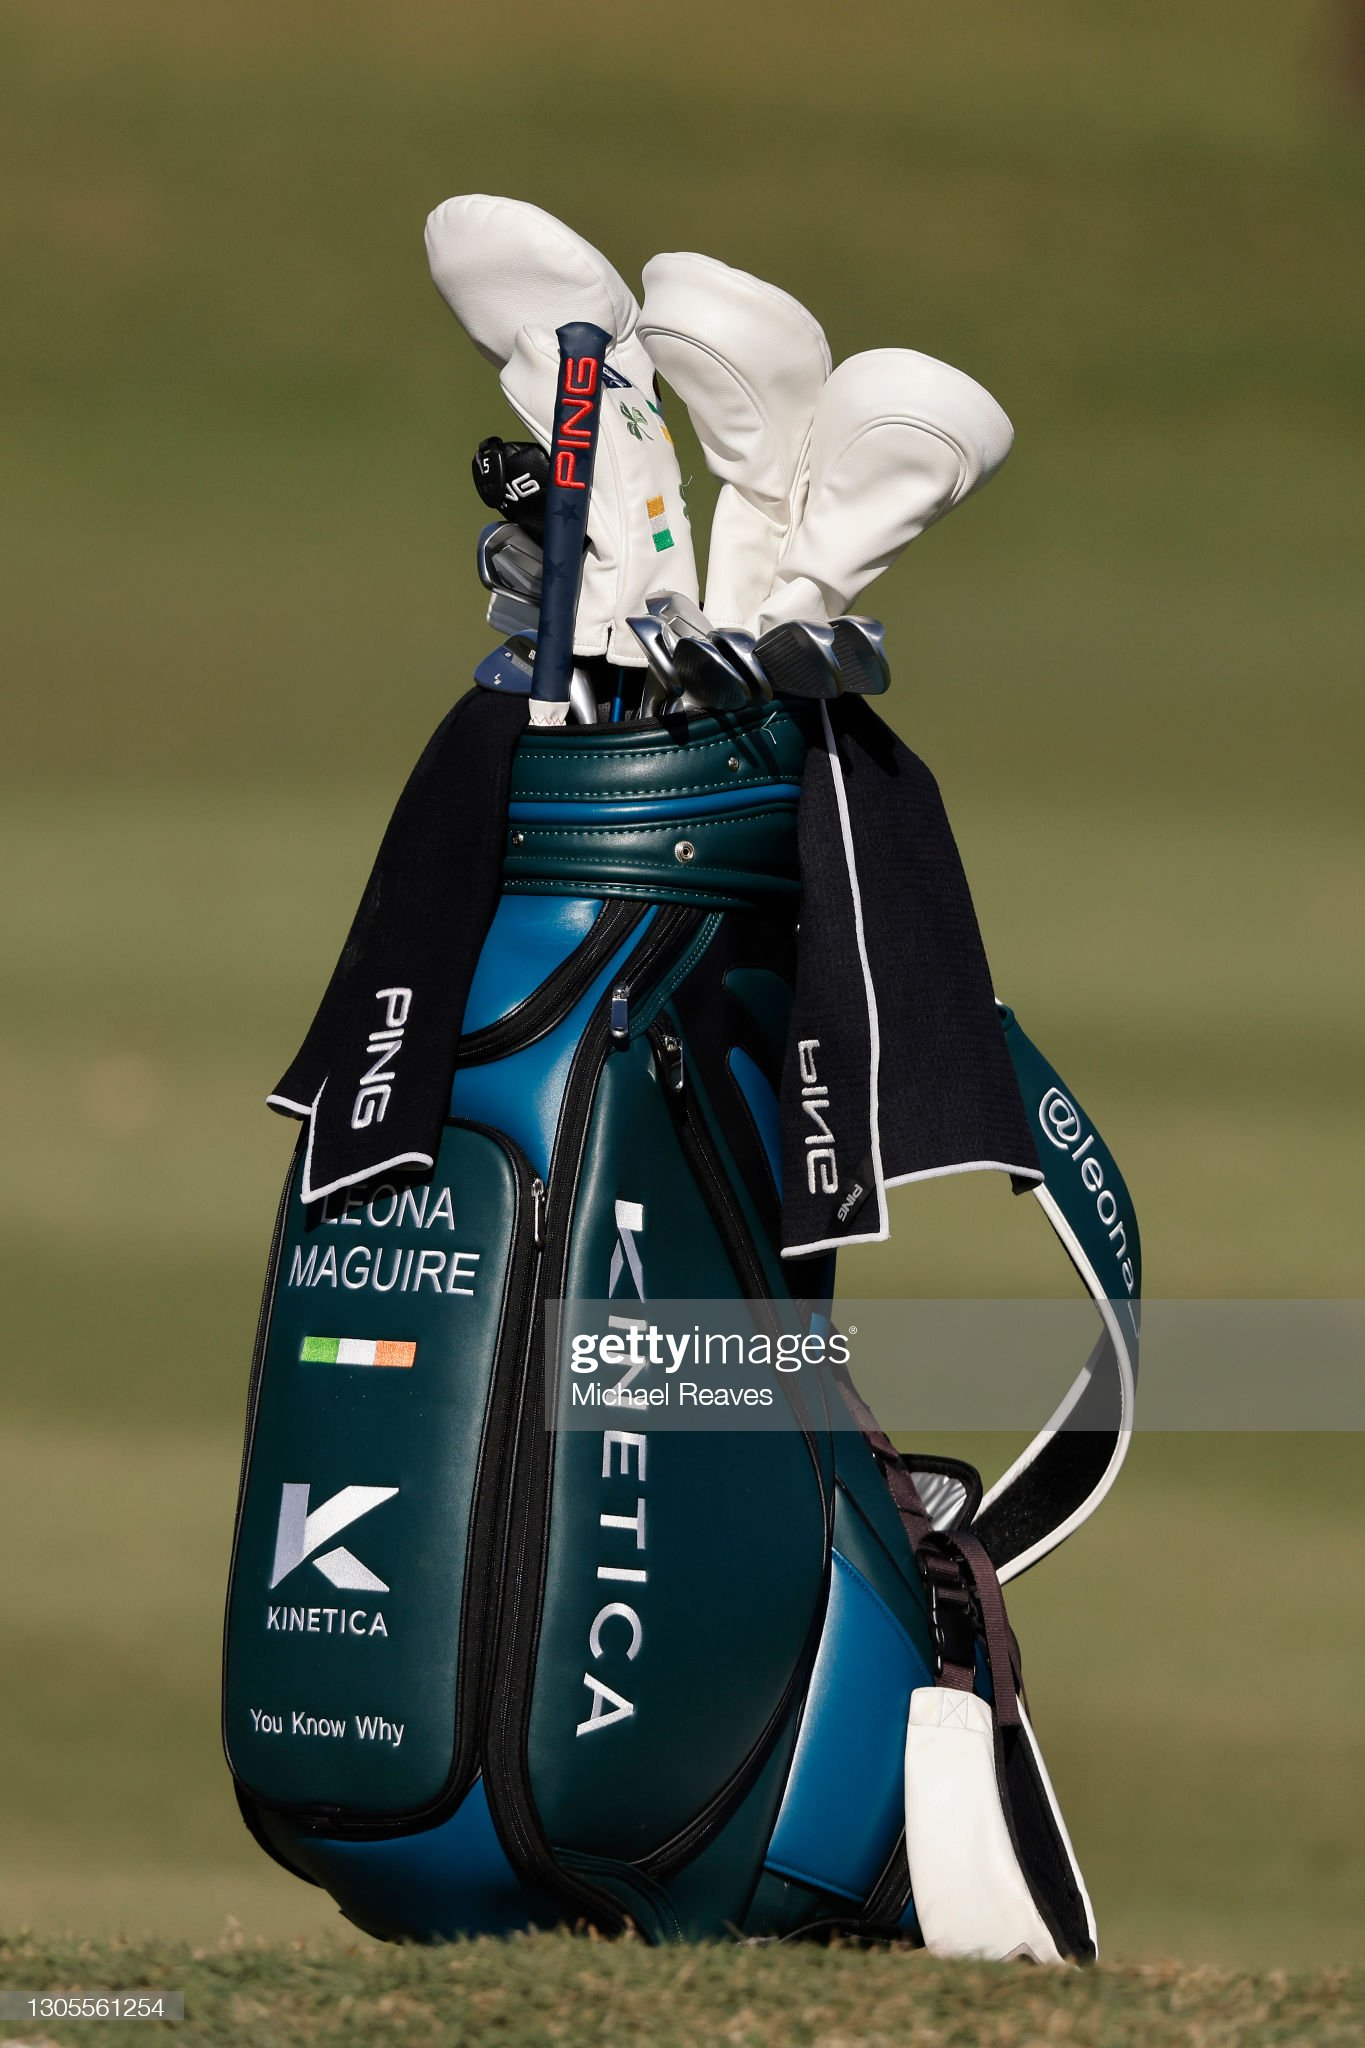 https://media.gettyimages.com/photos/detail-of-leona-maguire-of-ireland-bag-during-the-second-round-of-the-picture-id1305561254?s=2048x2048